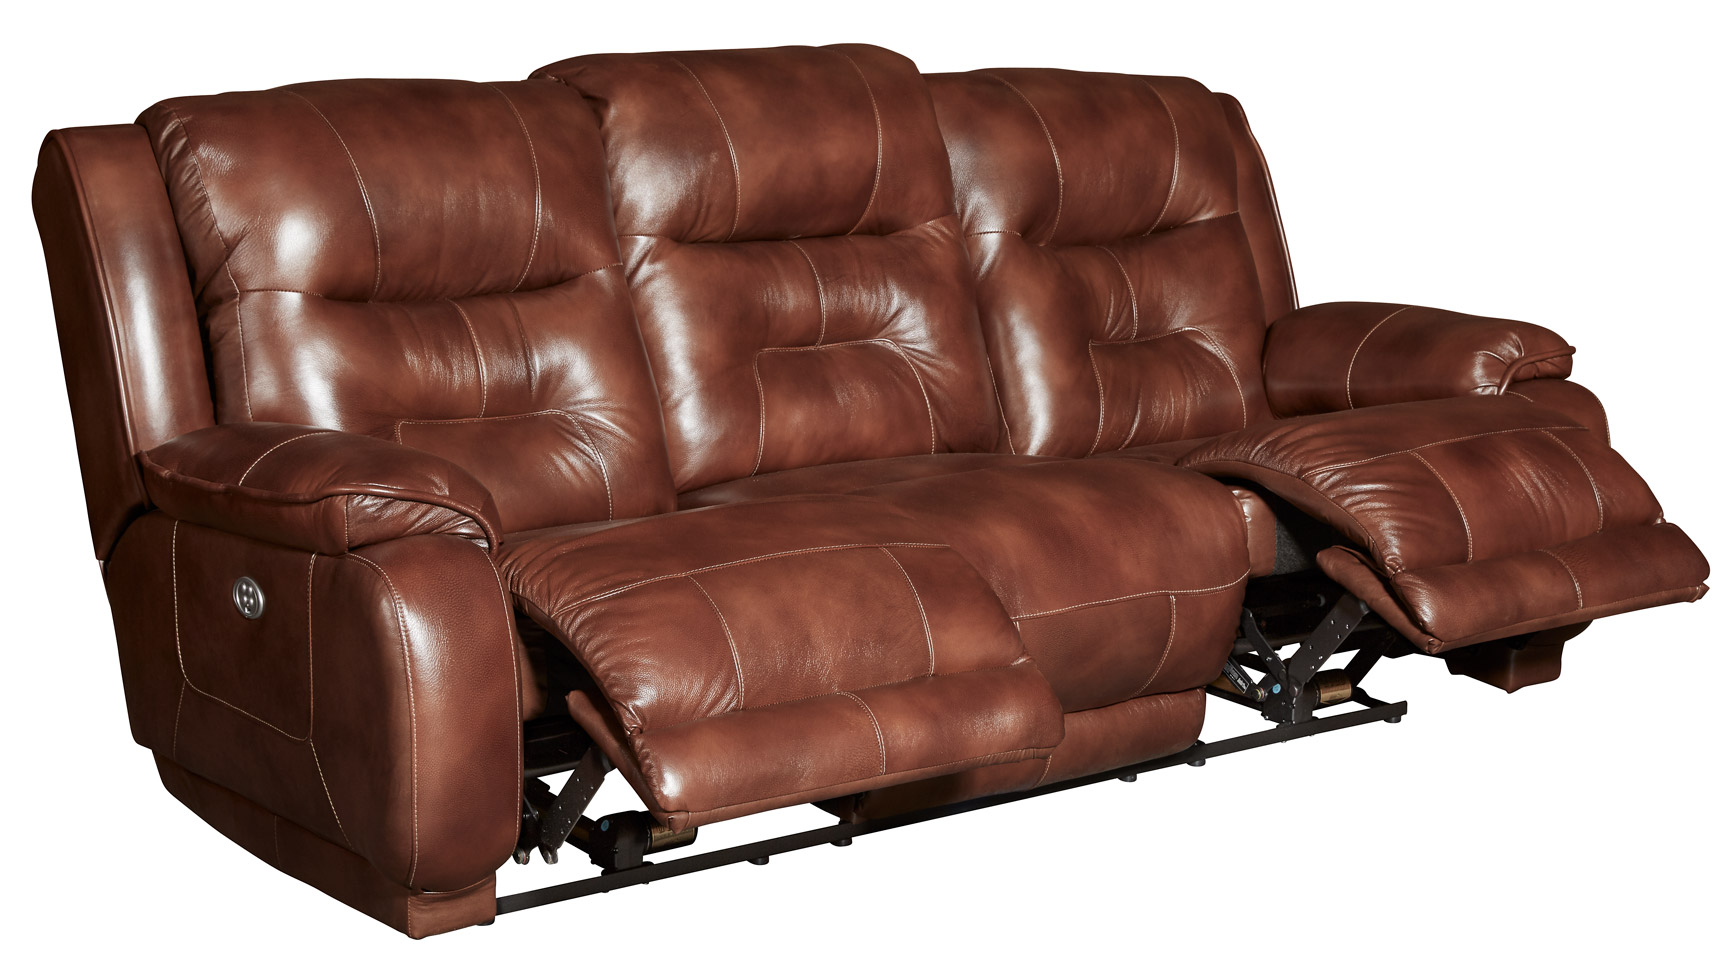 Crescent Power Reclining Sofa W/Power Headrest, , hi-res